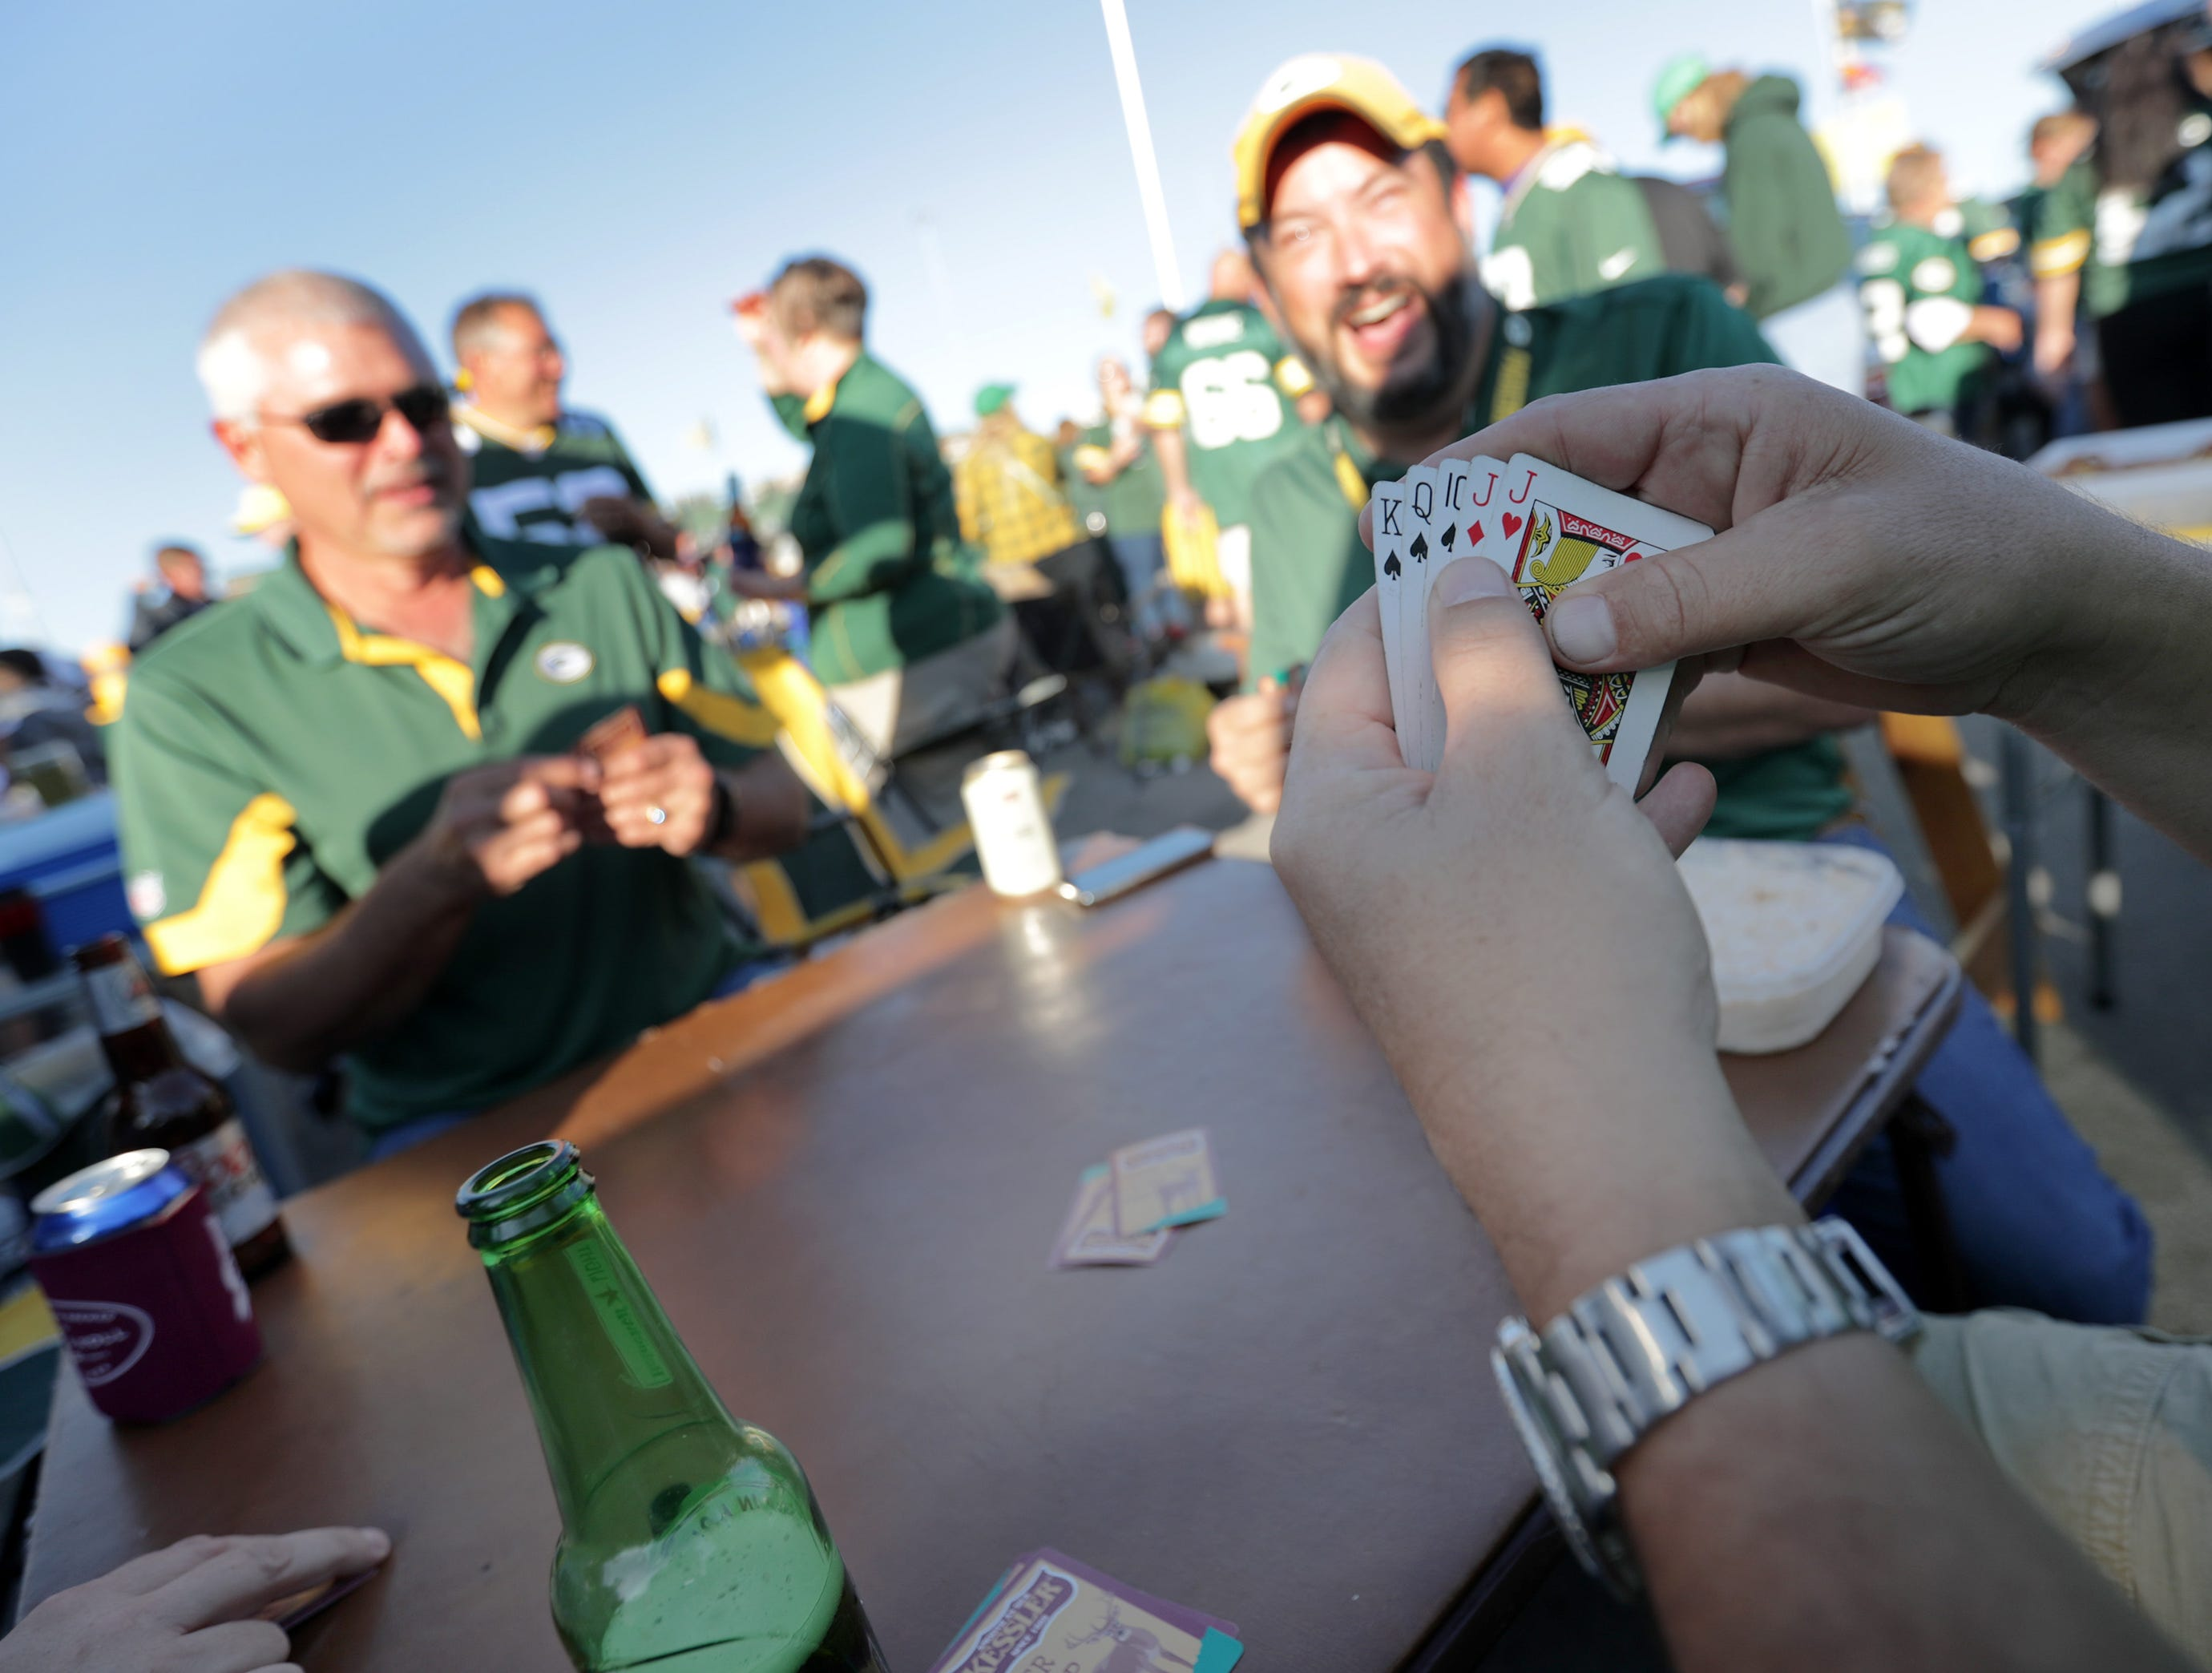 The Green Bay Packers against the Chicago Bears in the season opener on Sunday, September 9, 2018, at Lambeau Field in Green Bay, Wis.